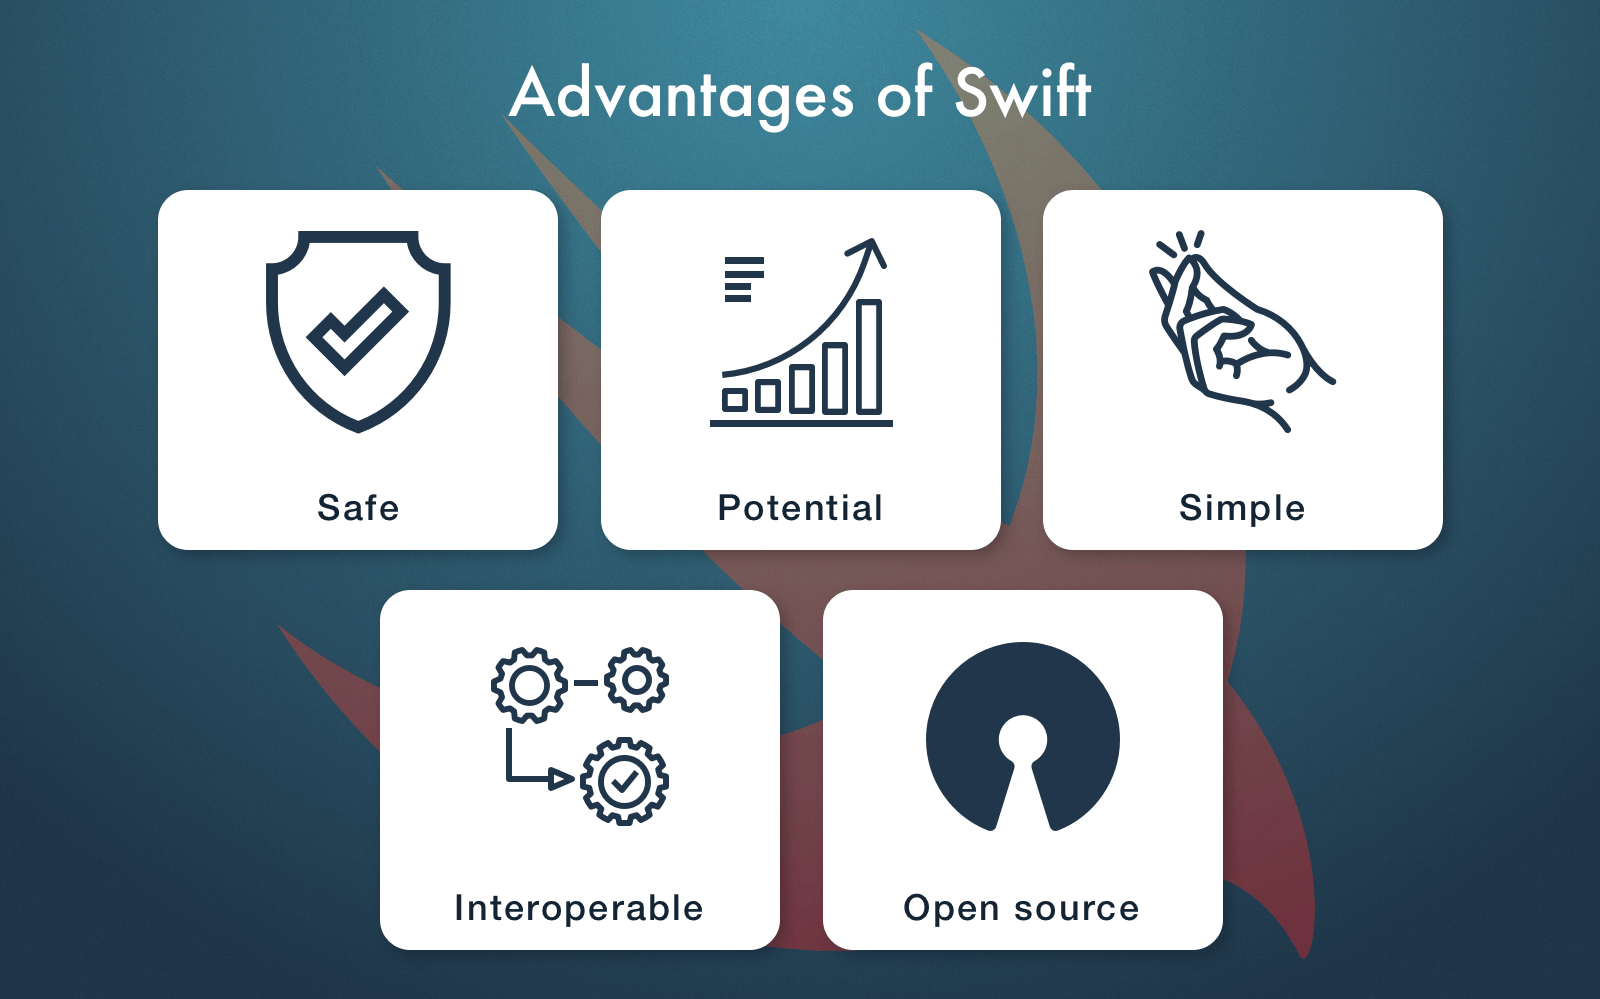 Swift pros